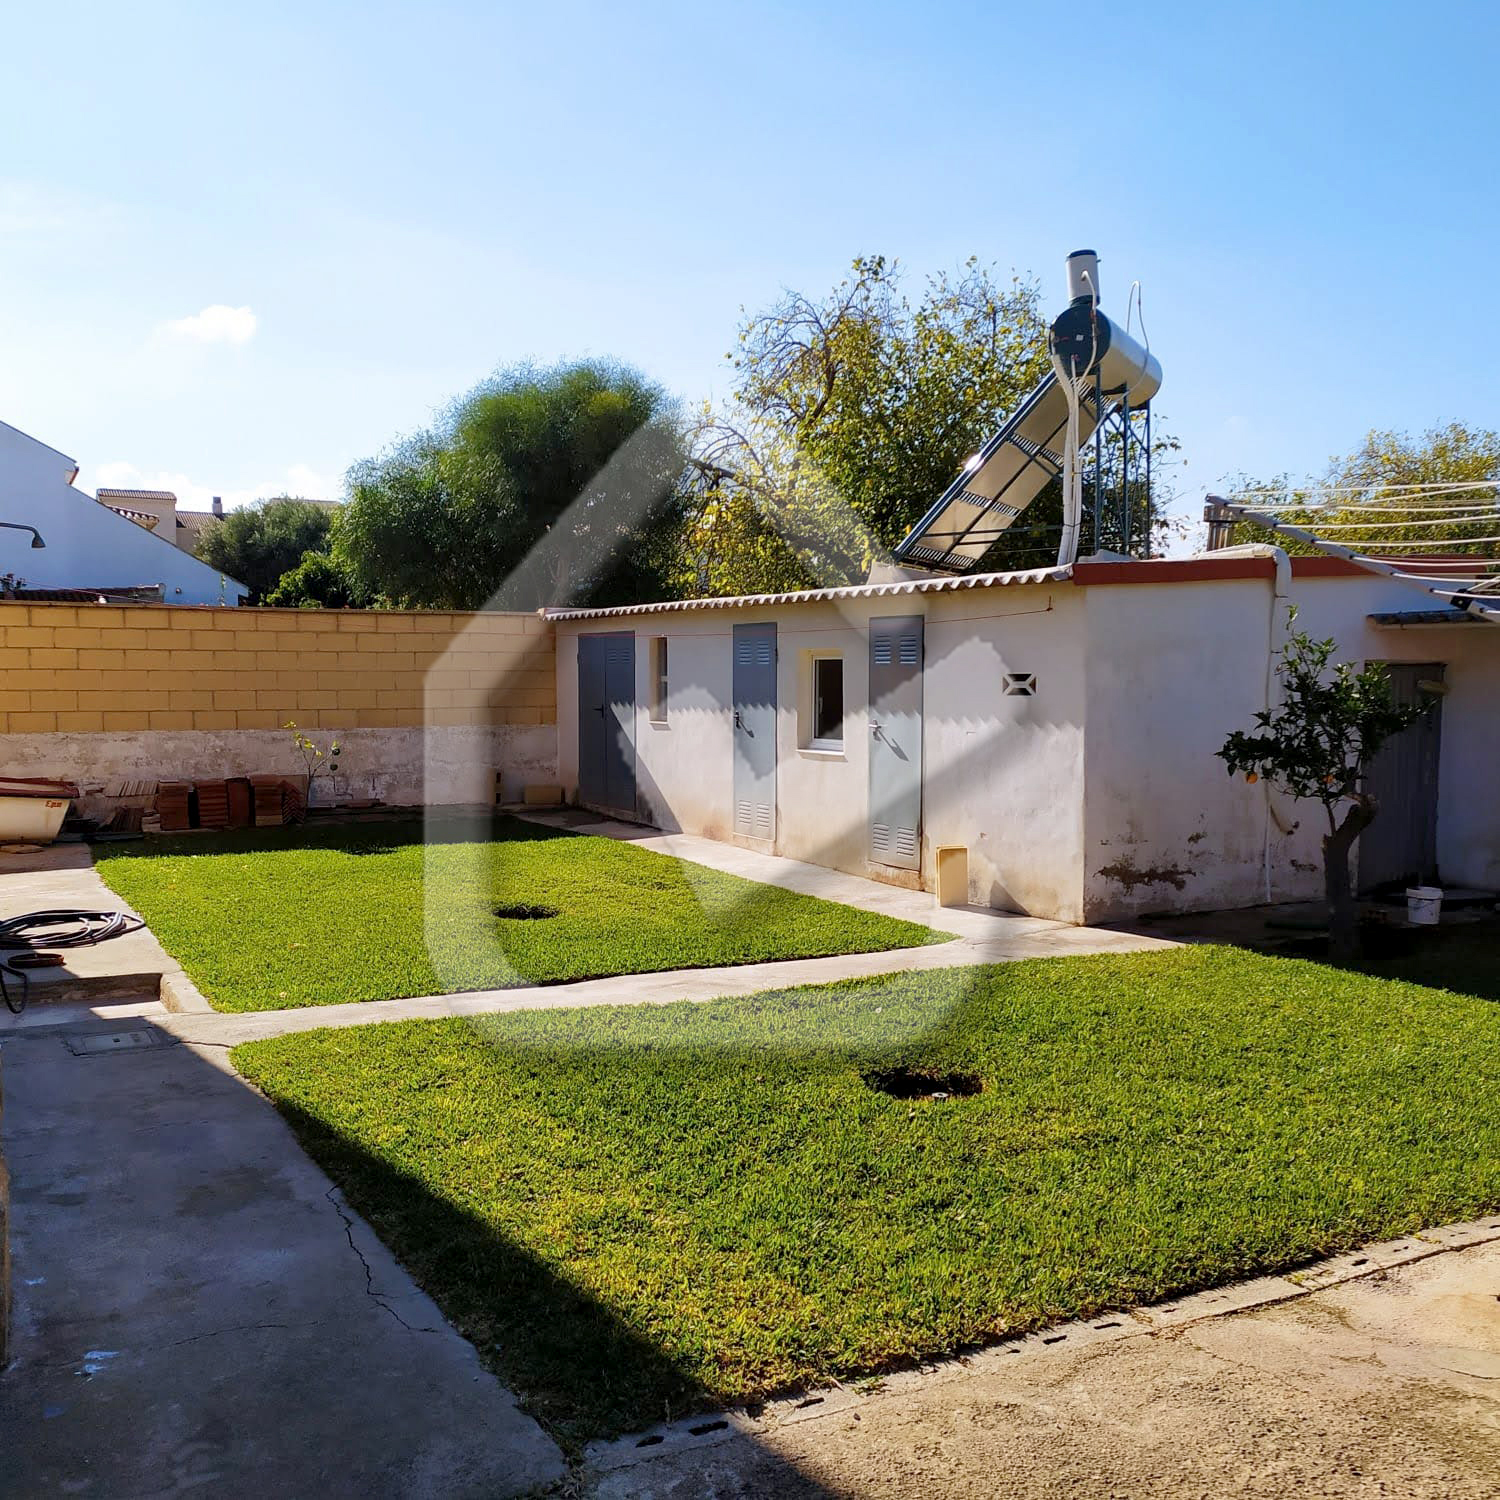 Photo  number 43: Villa in Sale in Denia, Area Marinas, Sector Bassetes-bovetes. Ref. 5-36-14957